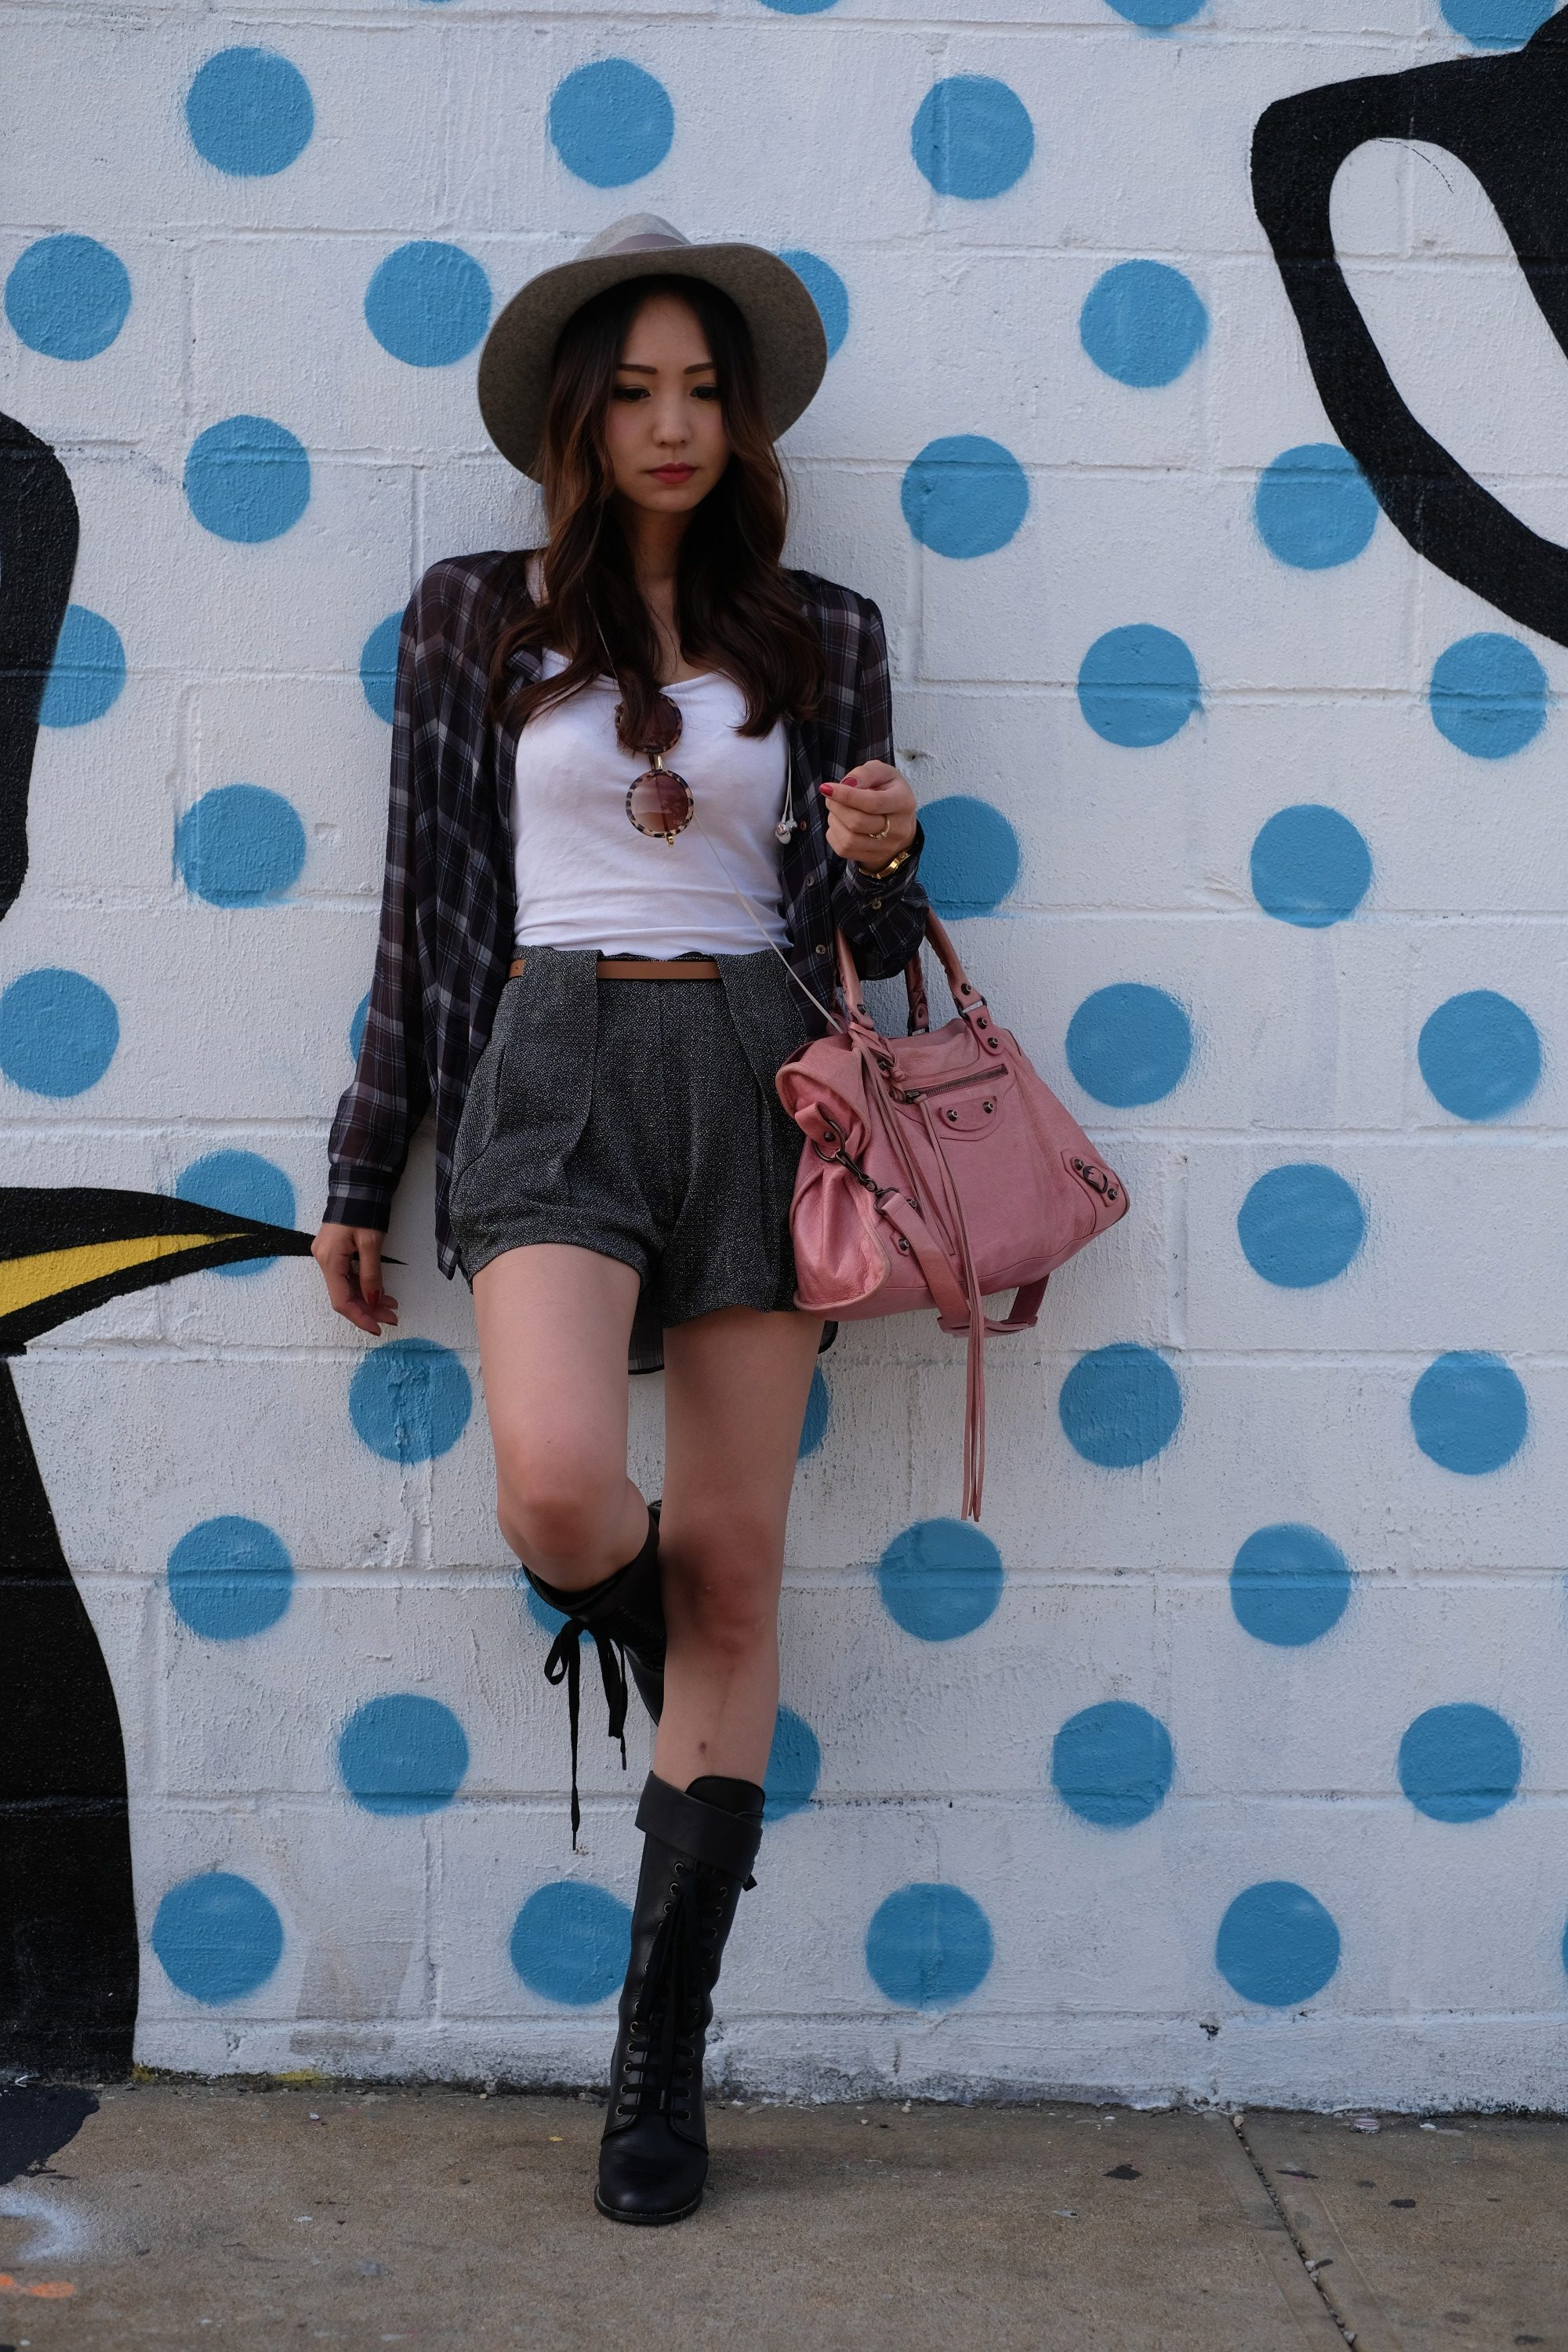 pretty Japanese girl in front of street art